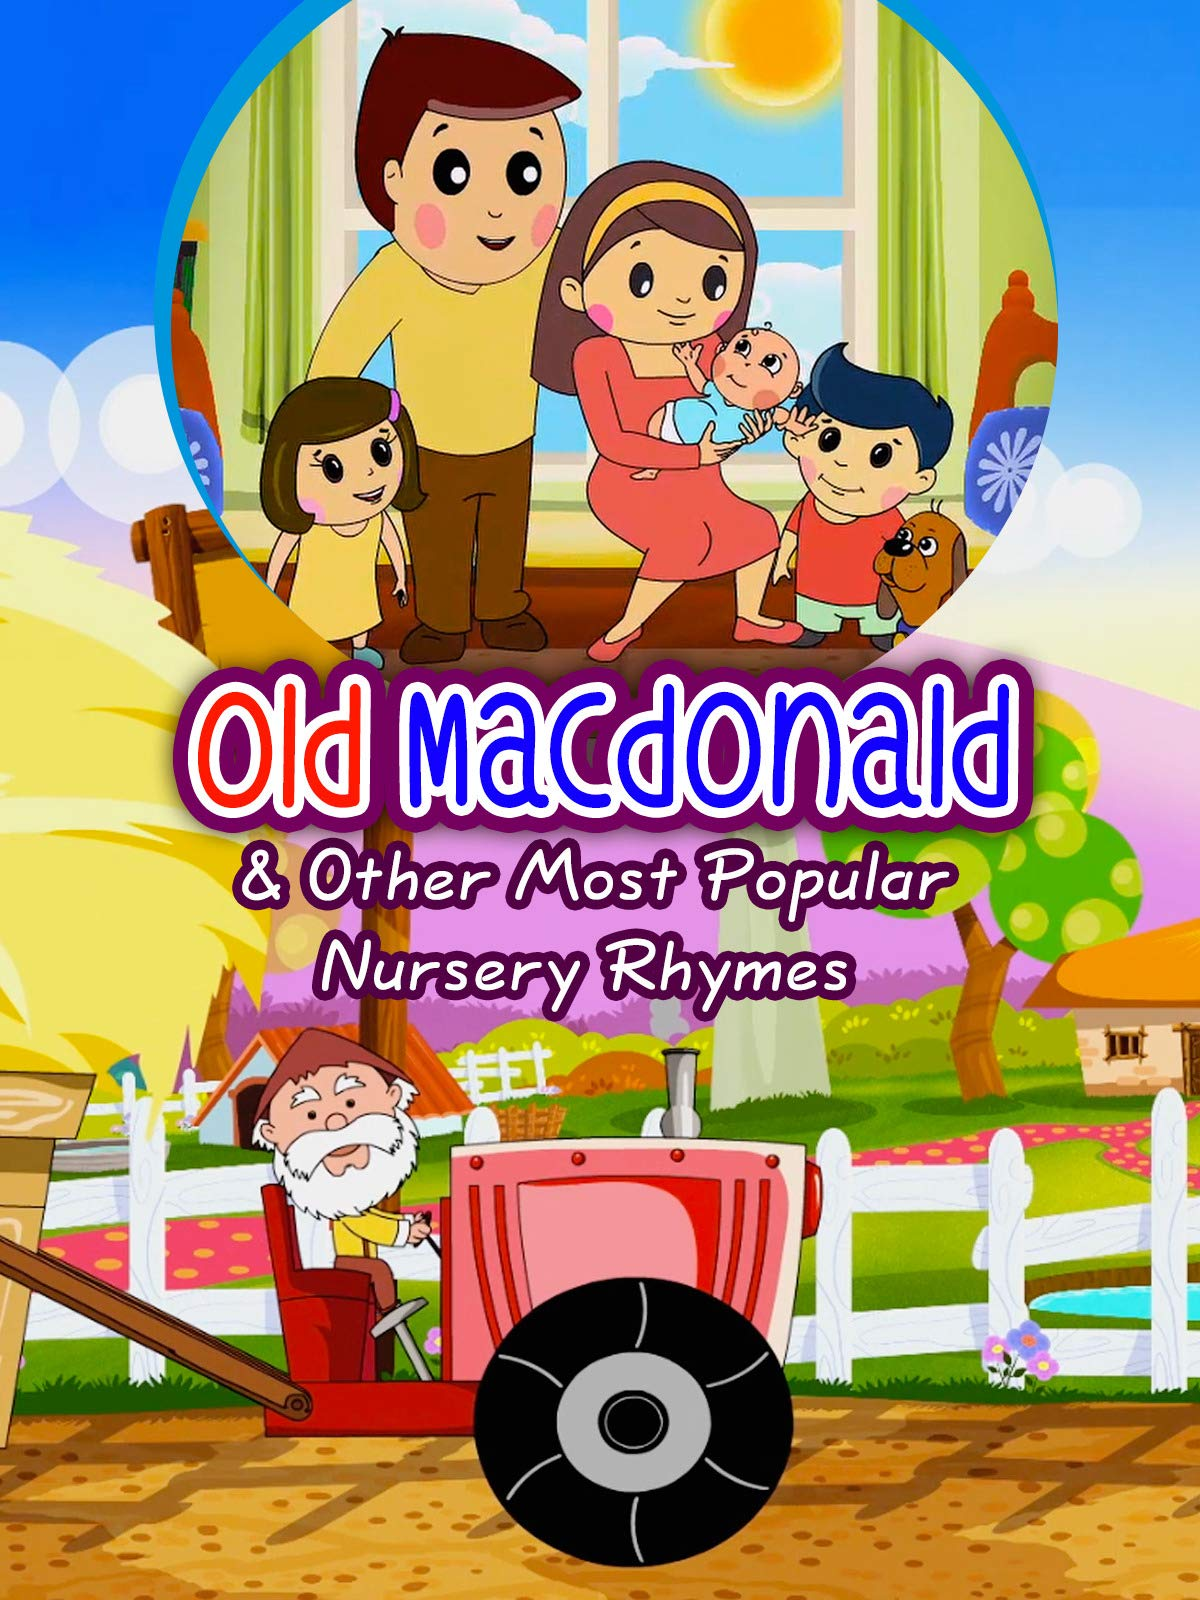 Old Macdonald & Other Most Popular Nursery Rhymes (HD) | Shemaroo Kids